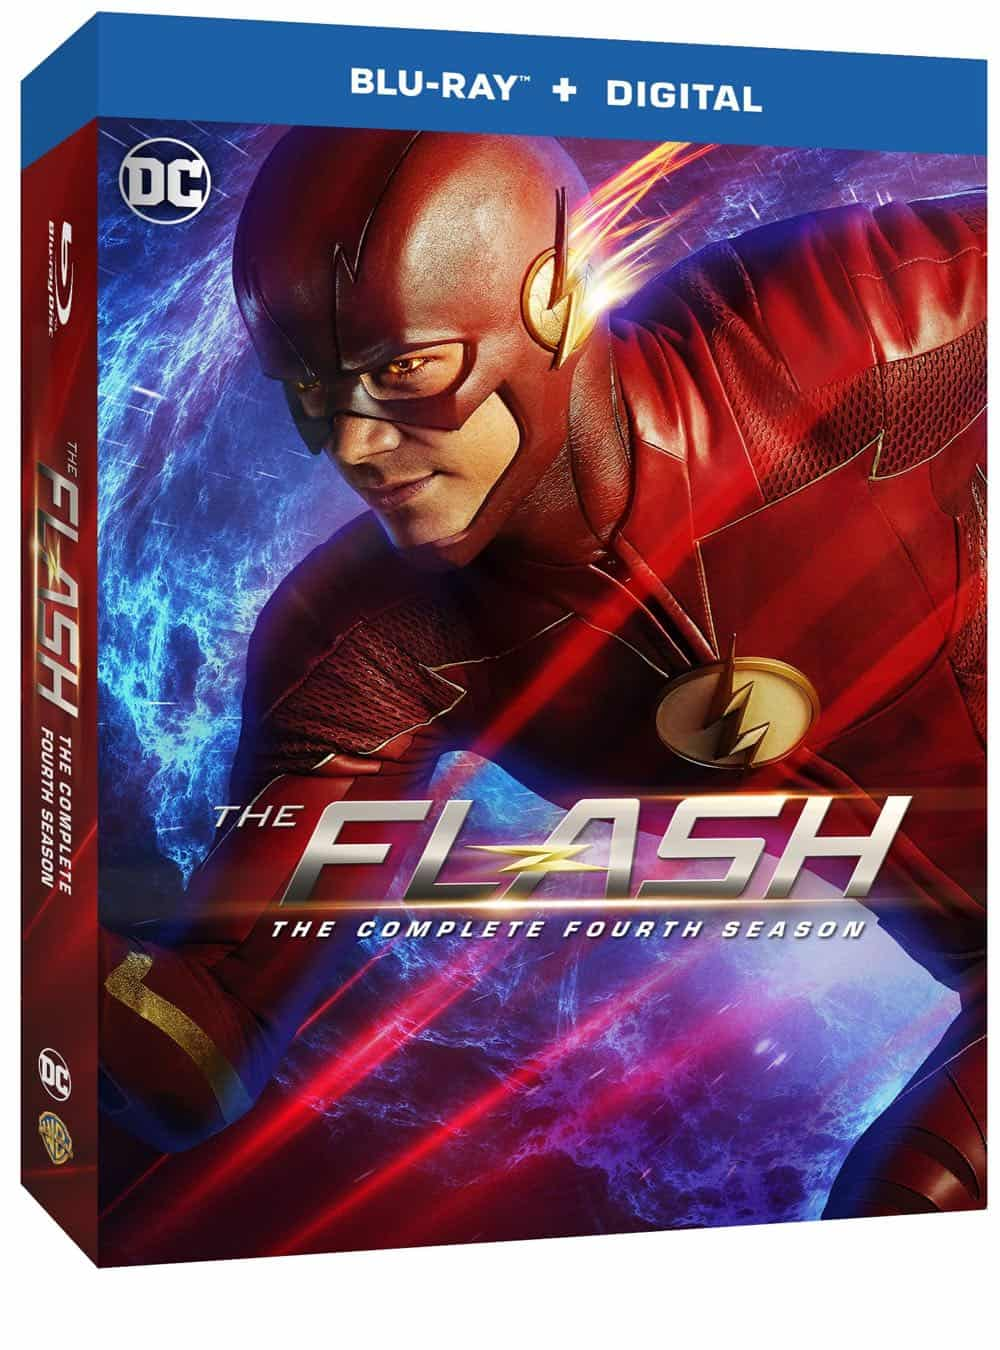 The-Flash-Season-4-Bluray-Digital-Cover-1